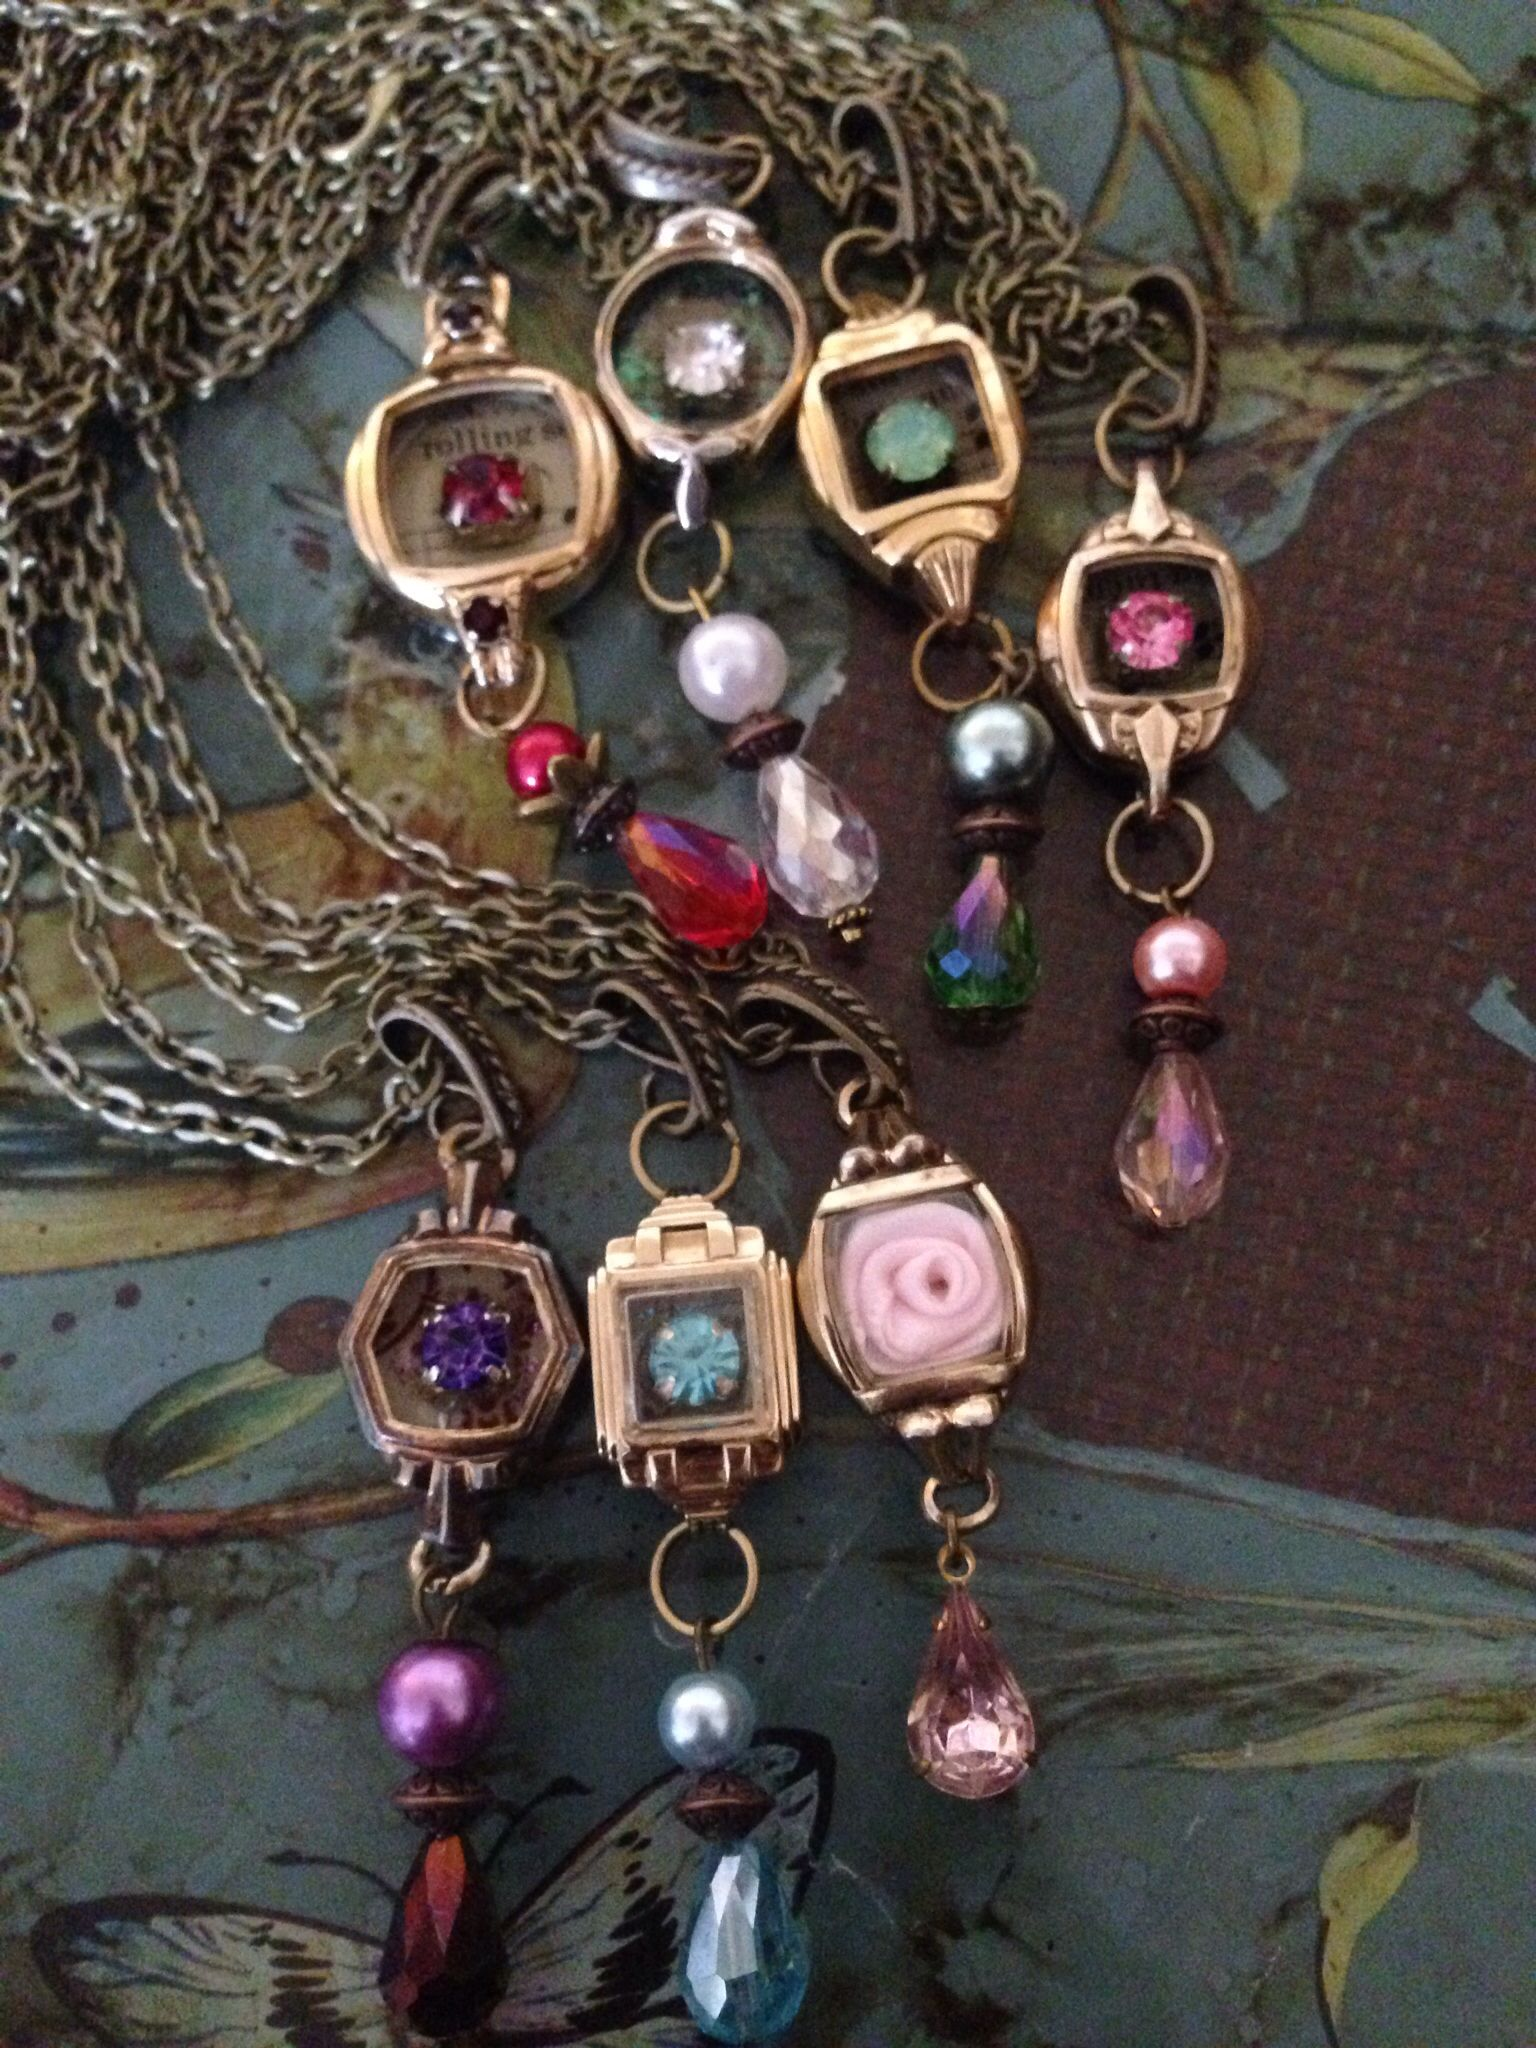 Repurposed watch cases in a rainbow of colors. ~my rogue heart